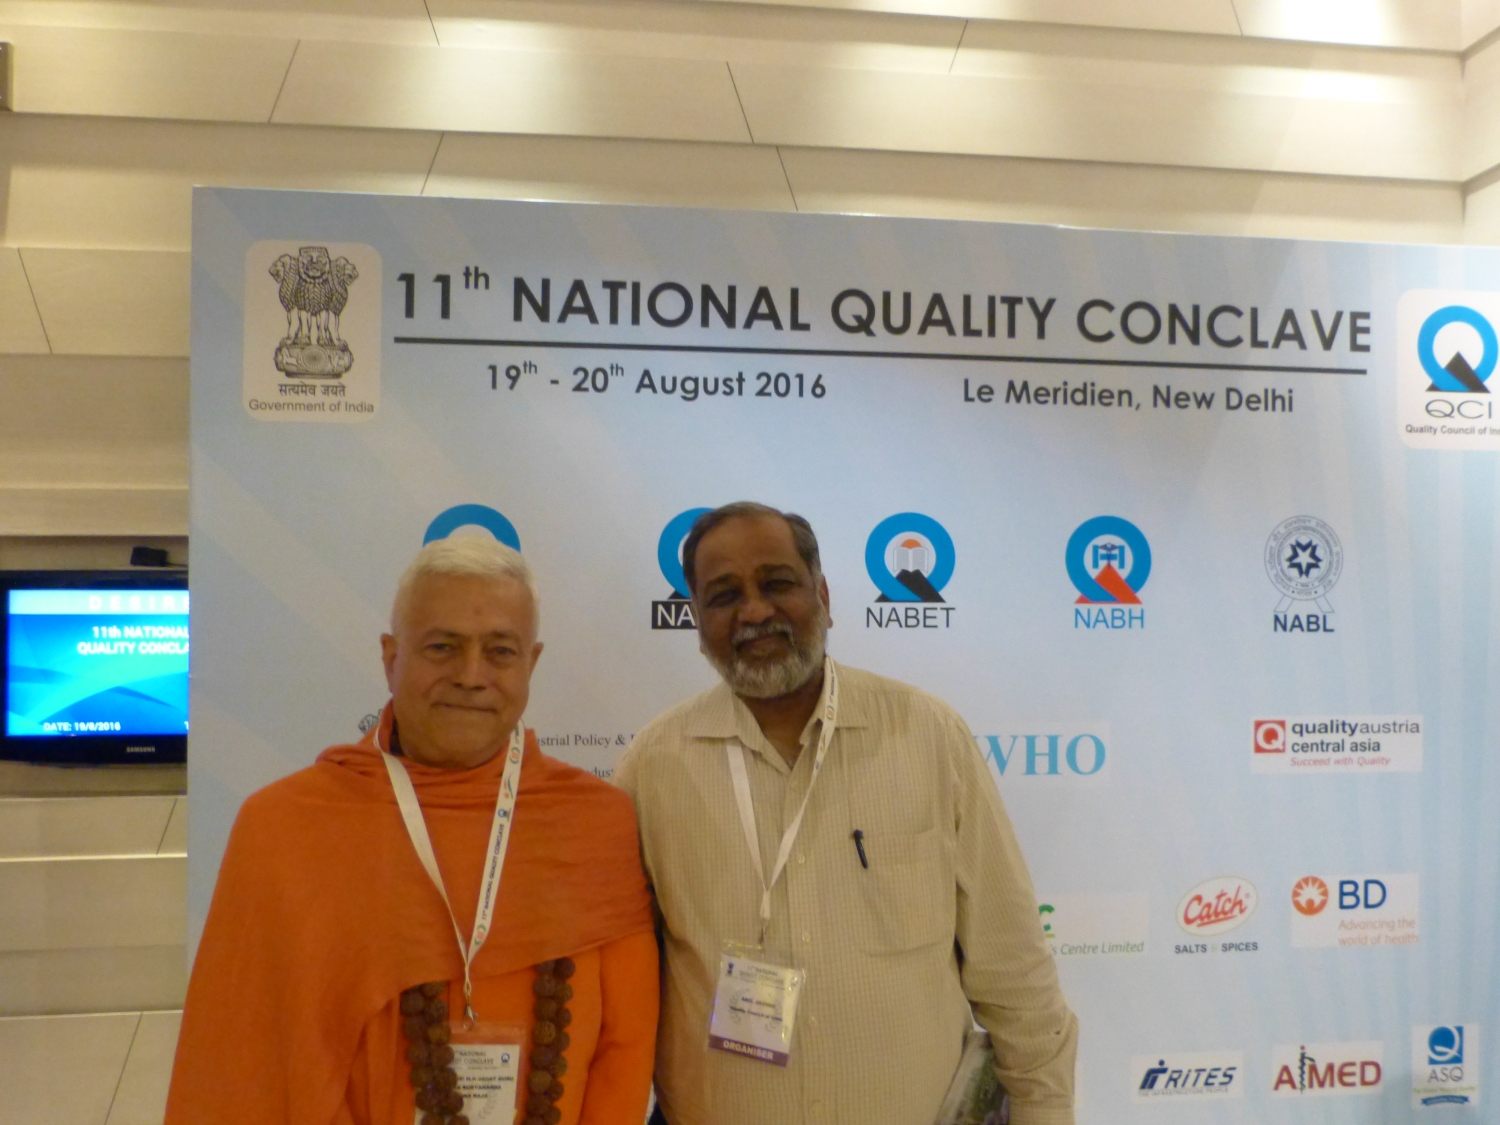 H.H. Jagat Guru Amrta Súryánanda Mahá Rája com Anil Jauhri, CEO of the NABCB of Quality Council of India